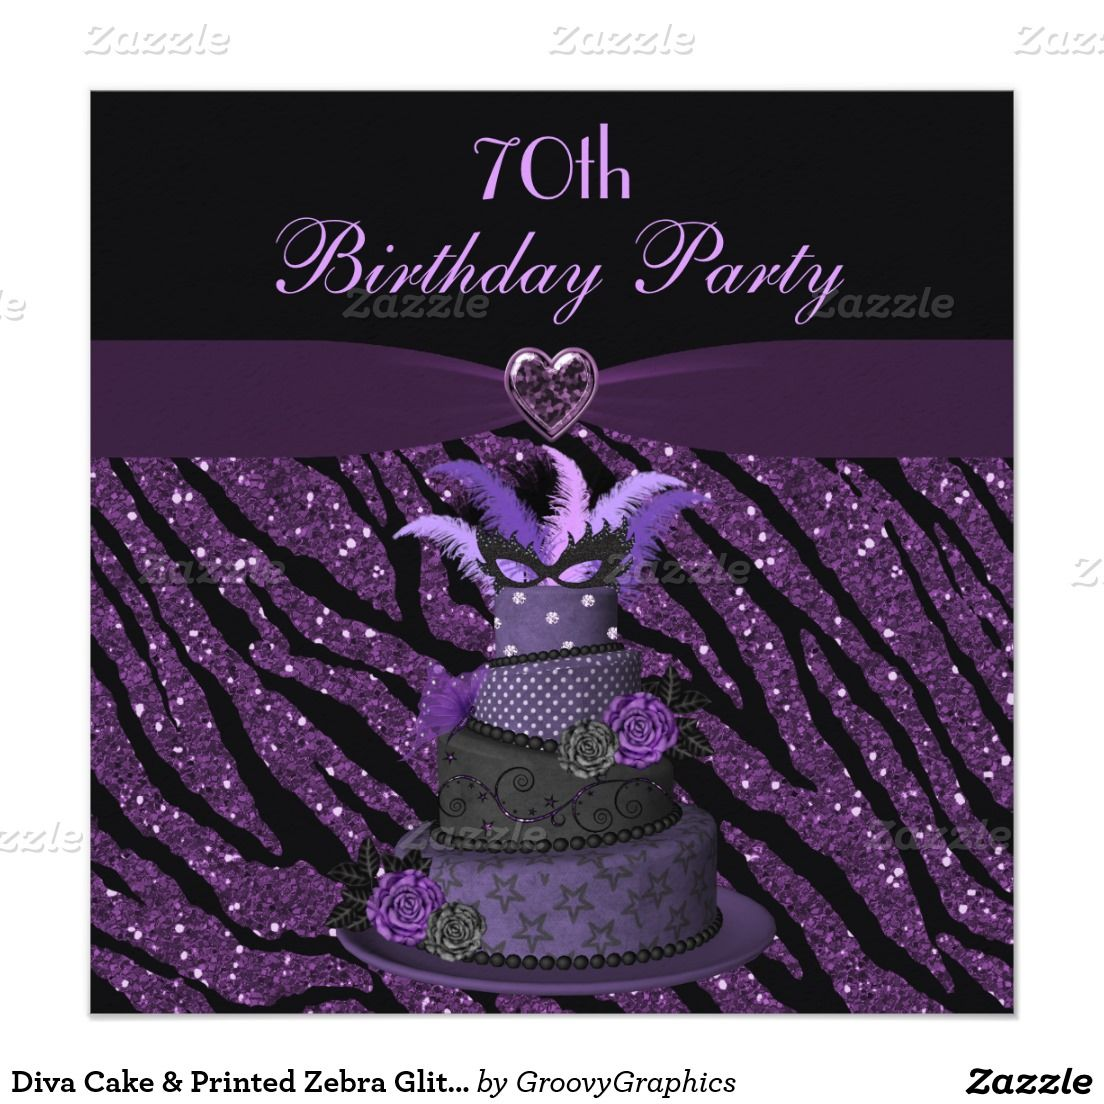 Diva Cake & Printed Zebra Glitter 70th Birthday 5.25x5.25 Square ...